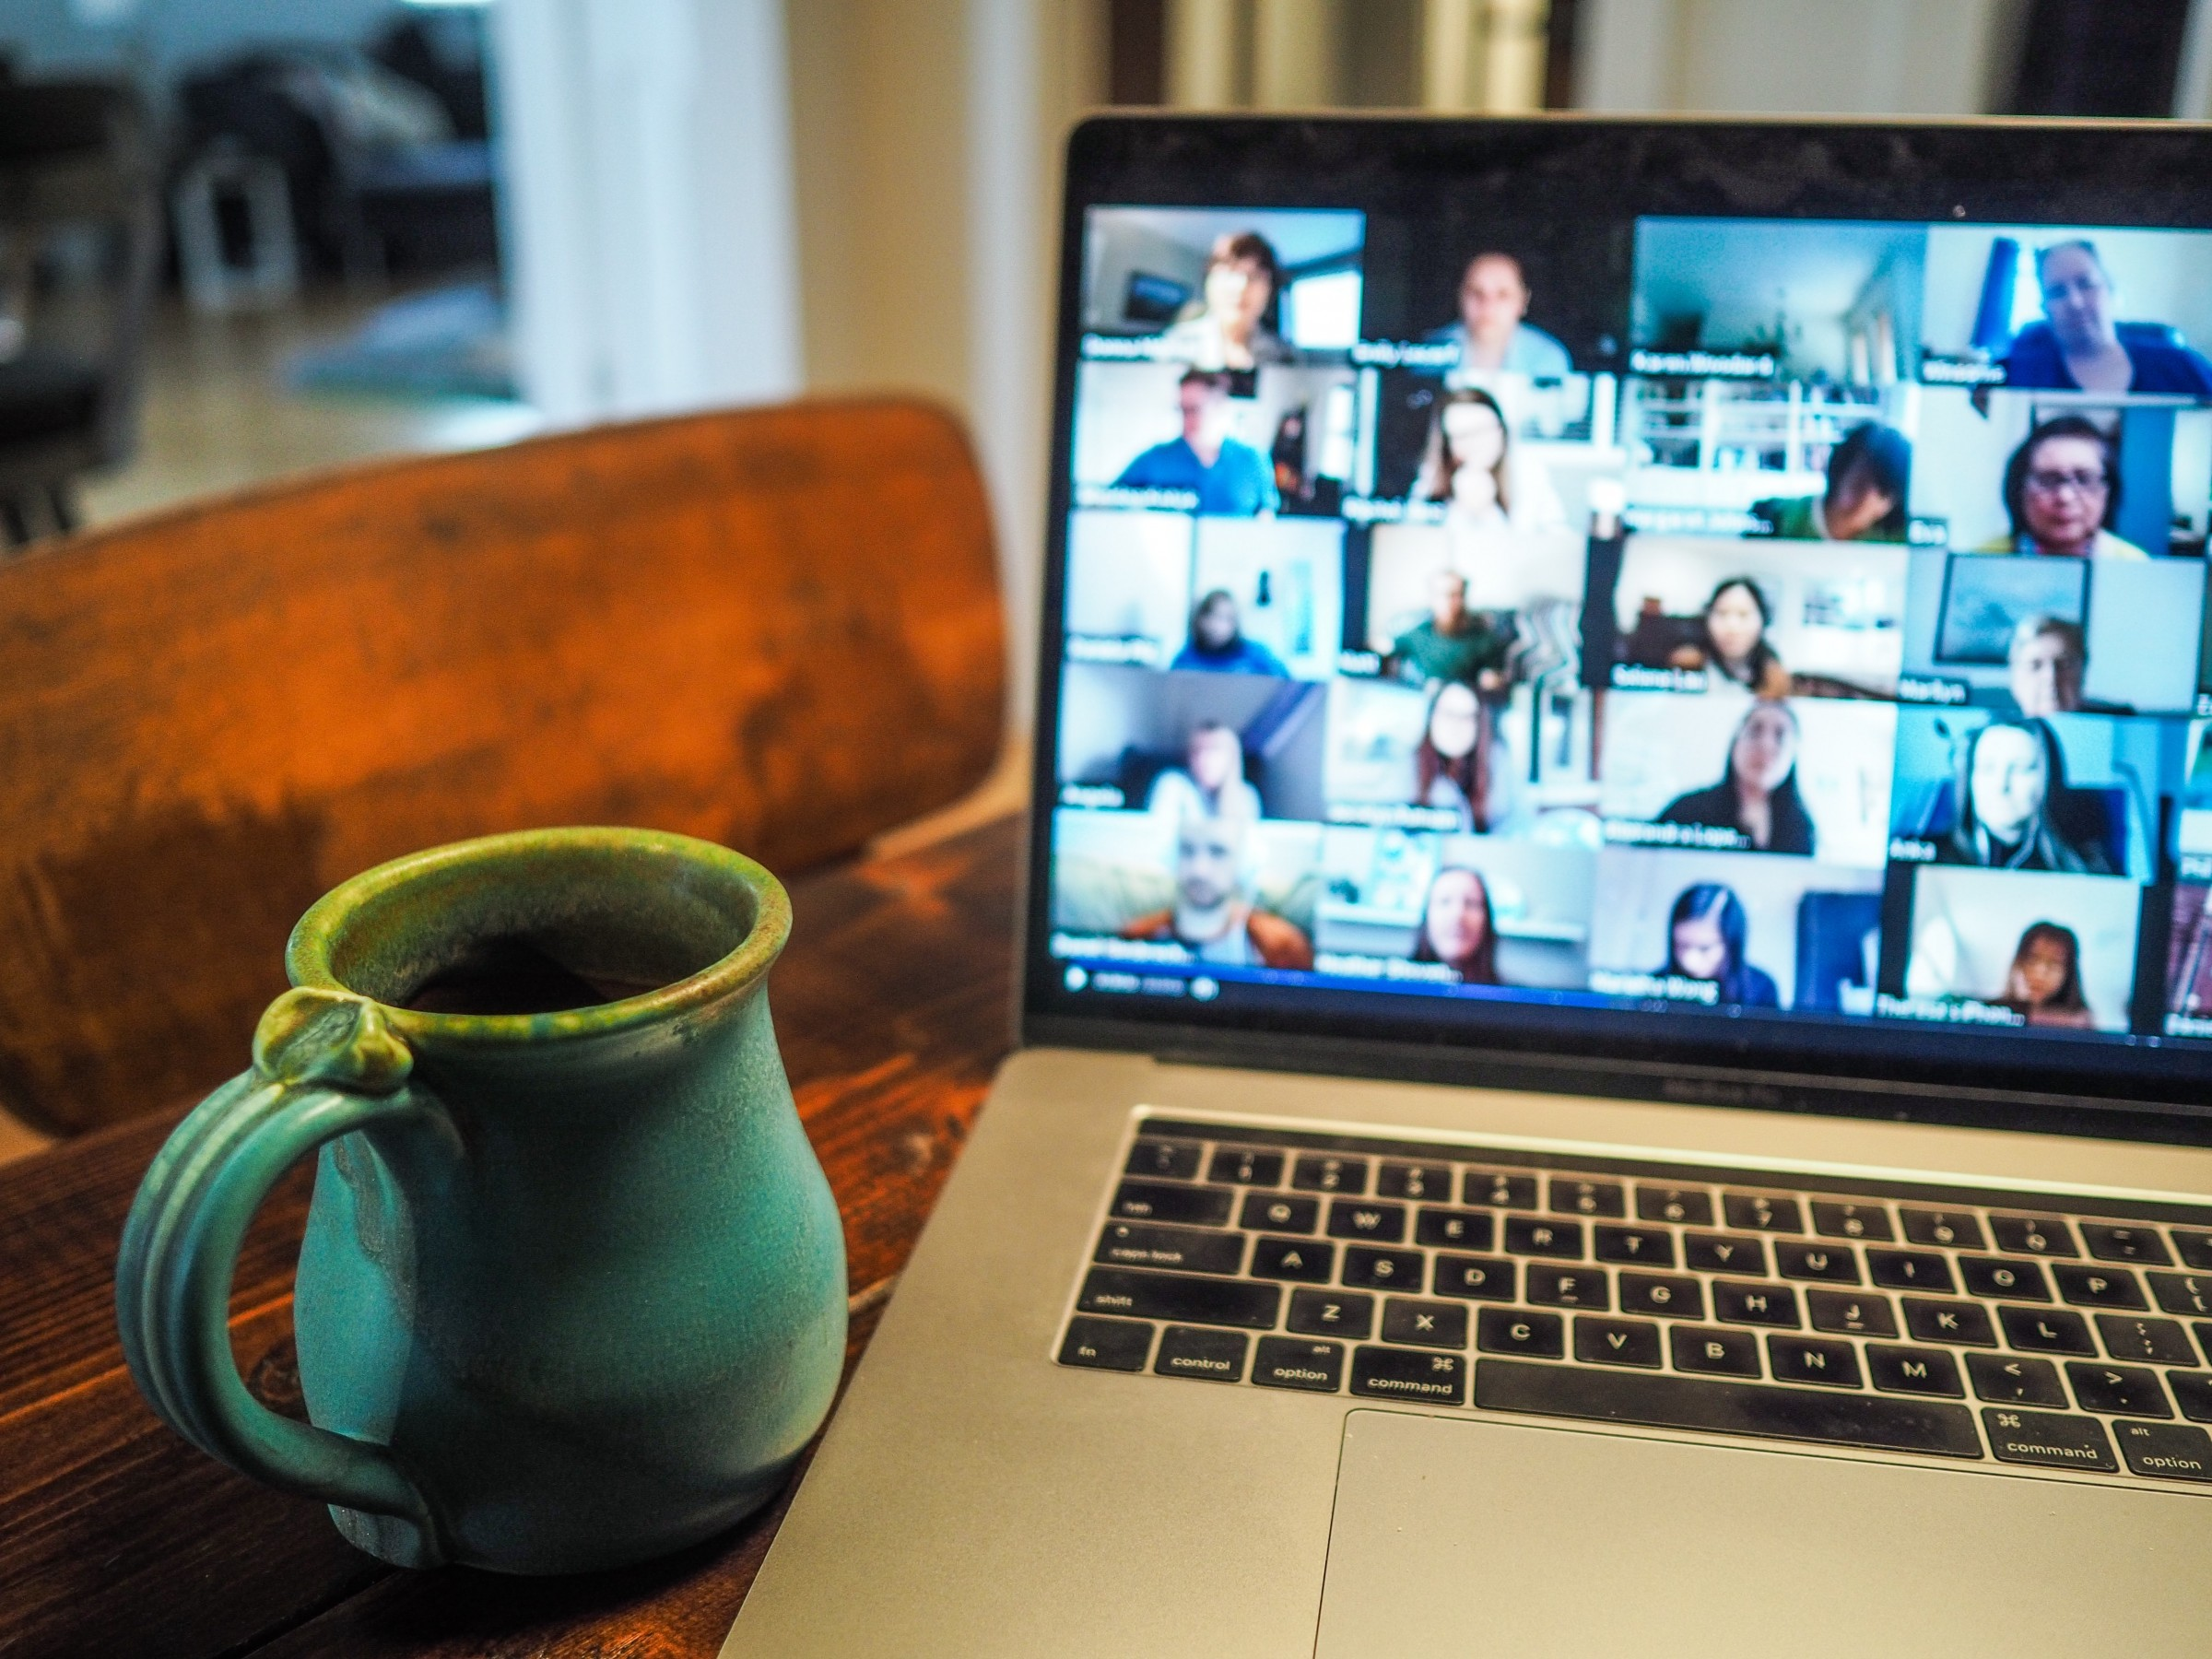 Maintaining company culture during work from home